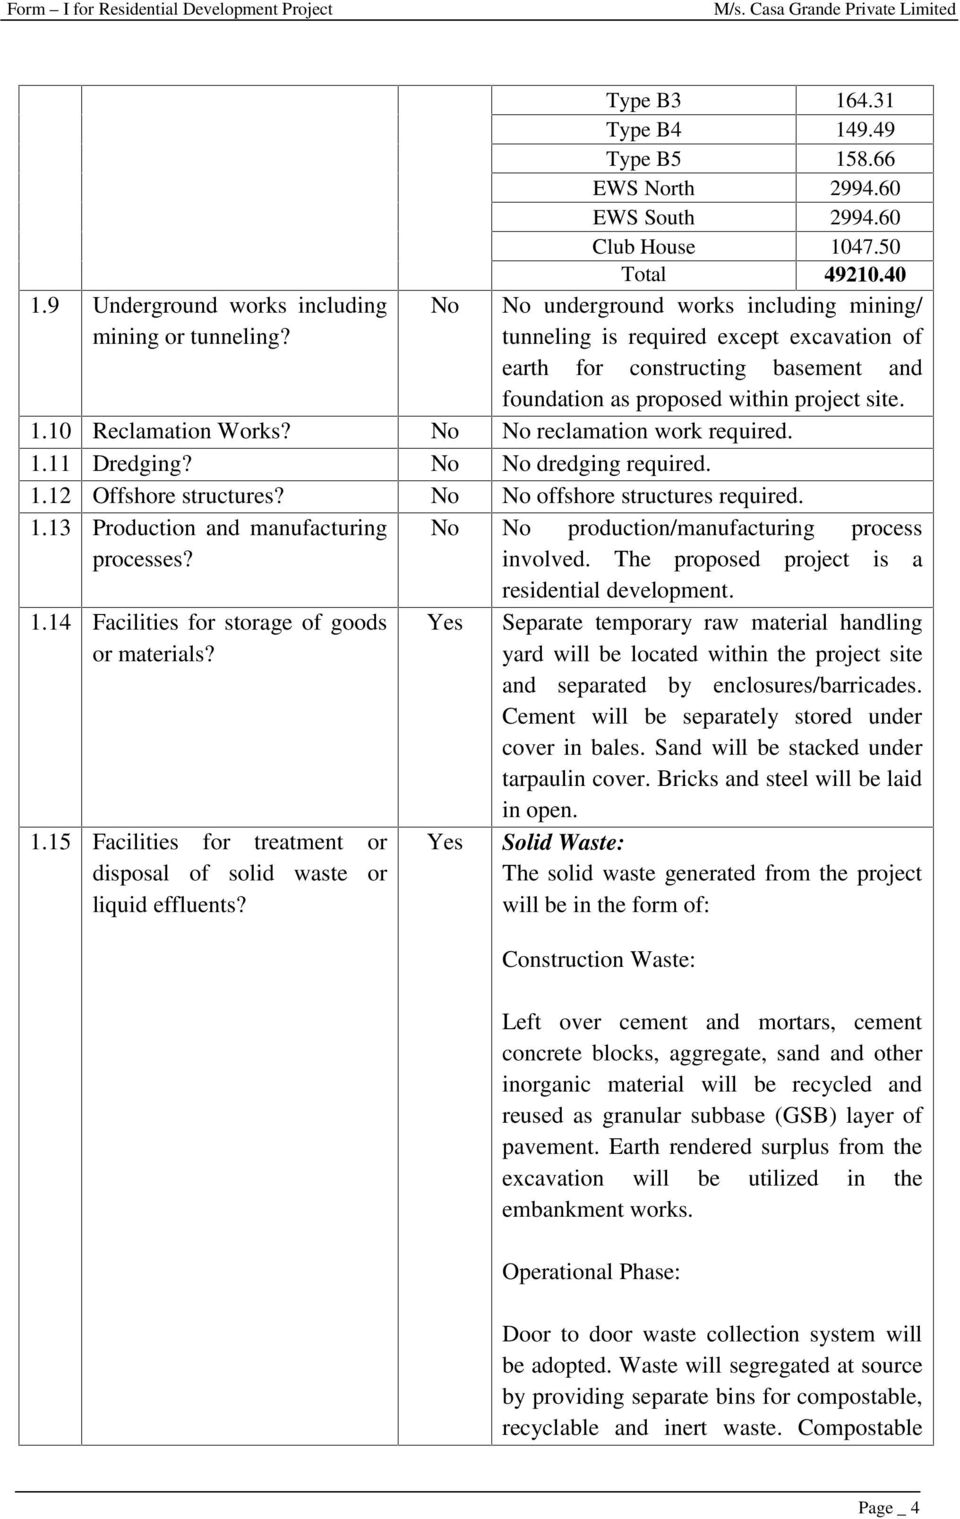 40 No underground works including mining/ tunneling is required except excavation of earth for constructing basement and foundation as proposed within project site. 1.10 Reclamation Works?